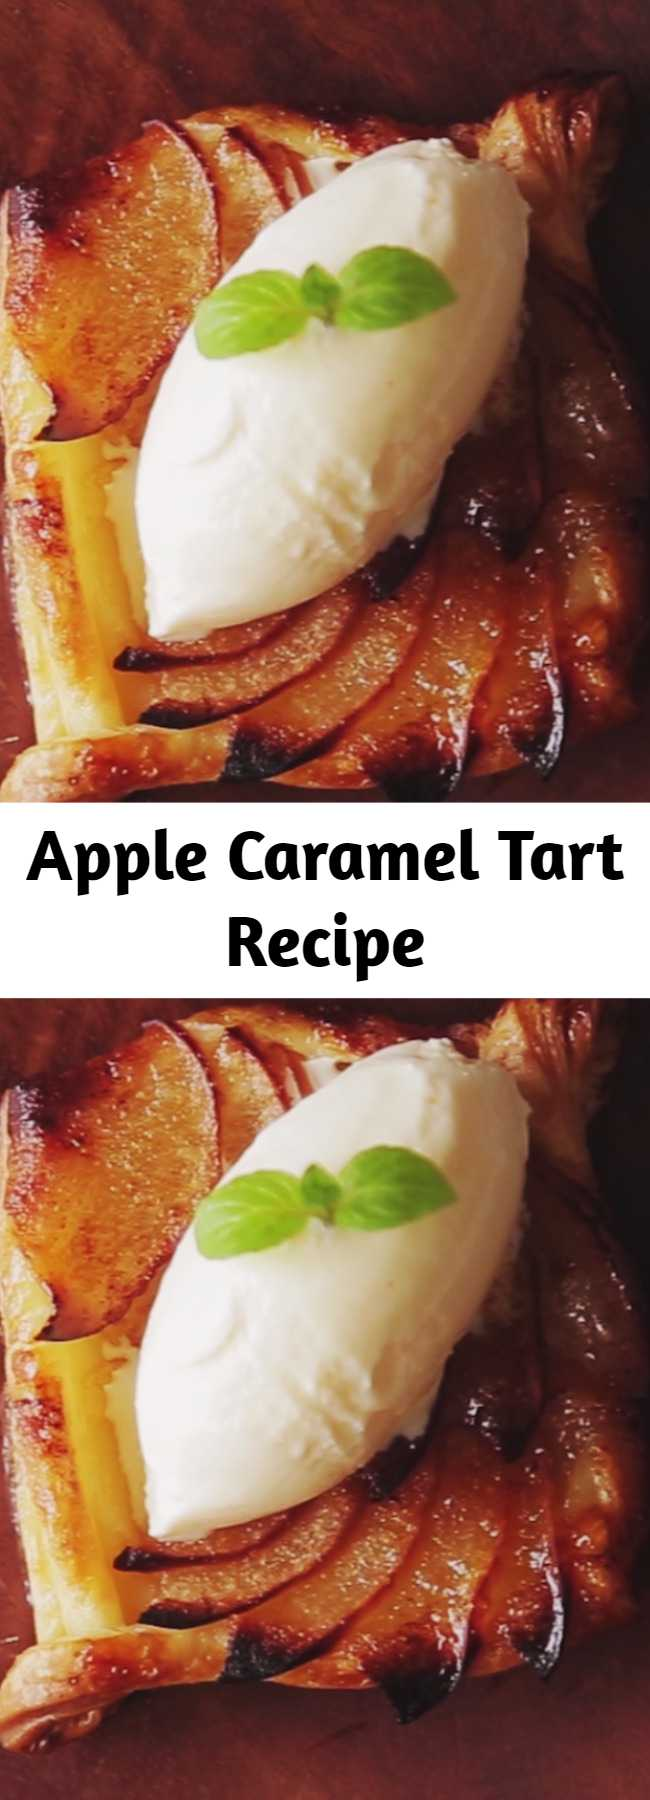 Apple Caramel Tart Recipe - Who doesn't love a fruit dessert that is delicious, pretty and topped with ice cream? Because everyone loves desserts that are both pretty and sweet.